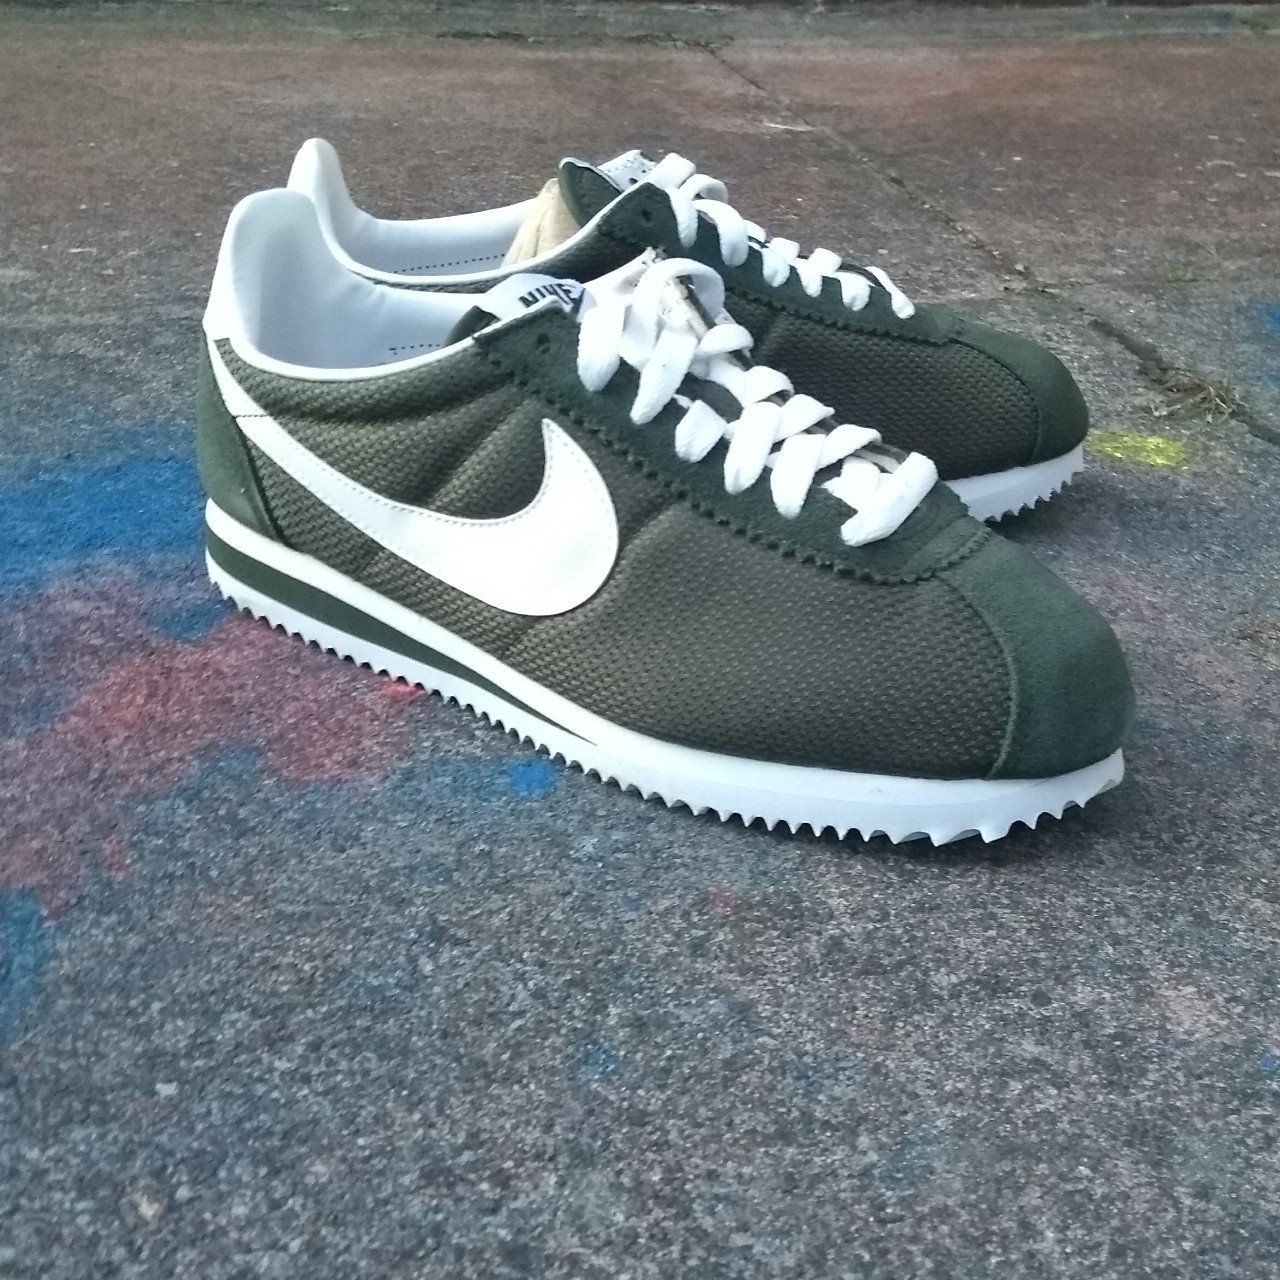 aef060f18b nike classic cortez nylon 09, for sale here isca classic of - Depop